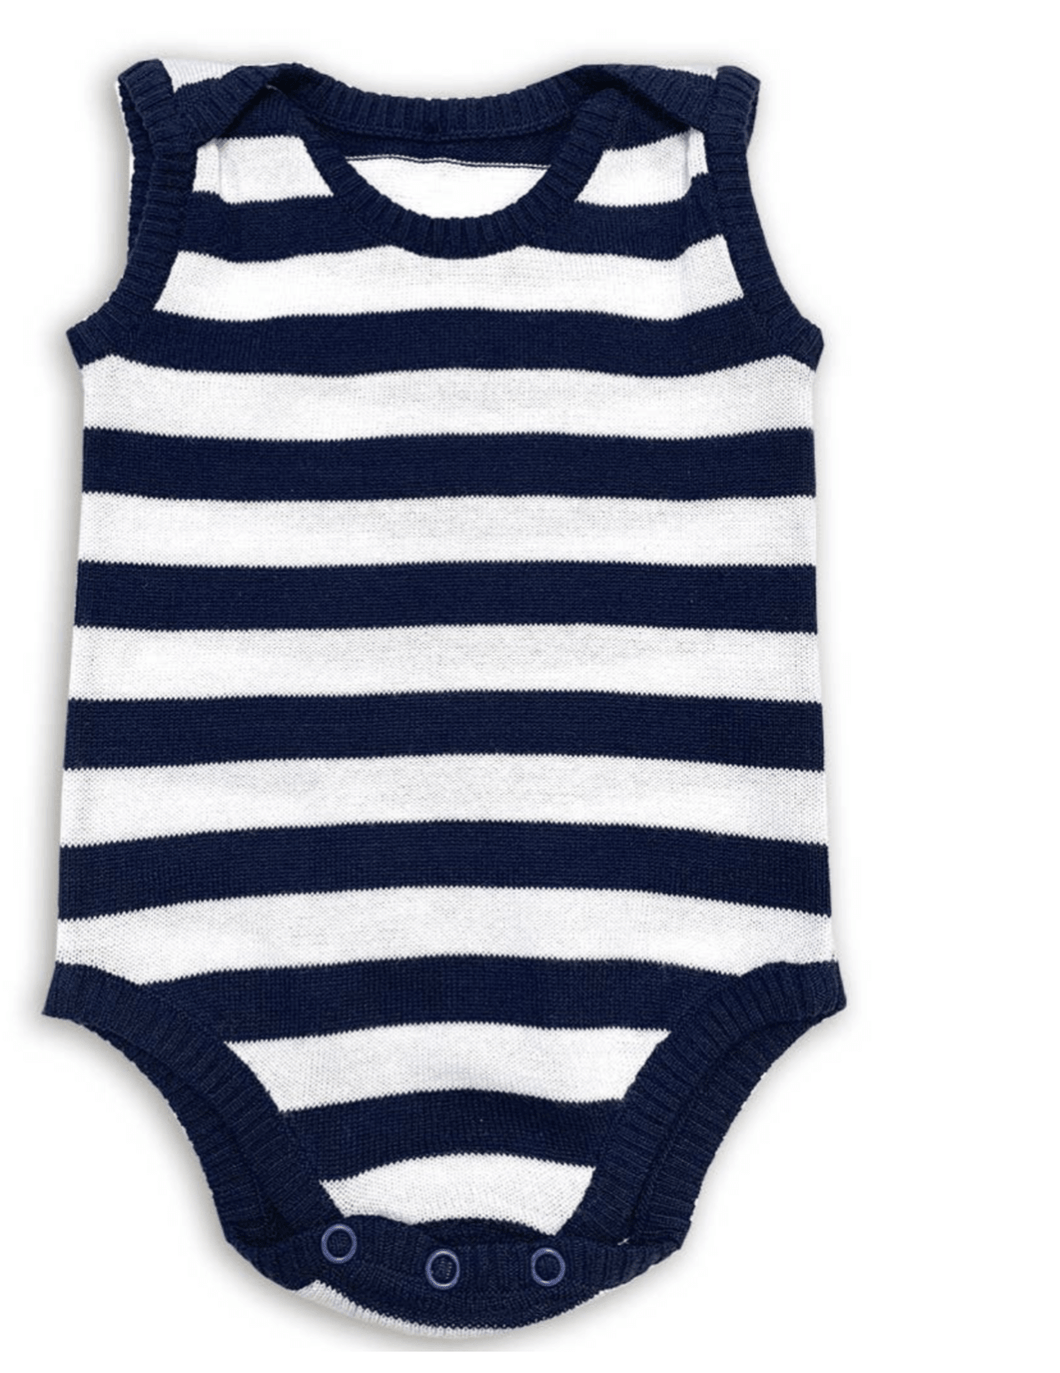 Milan Knit Sleeveless Bodysuit - Make Me Yours Toy Studio